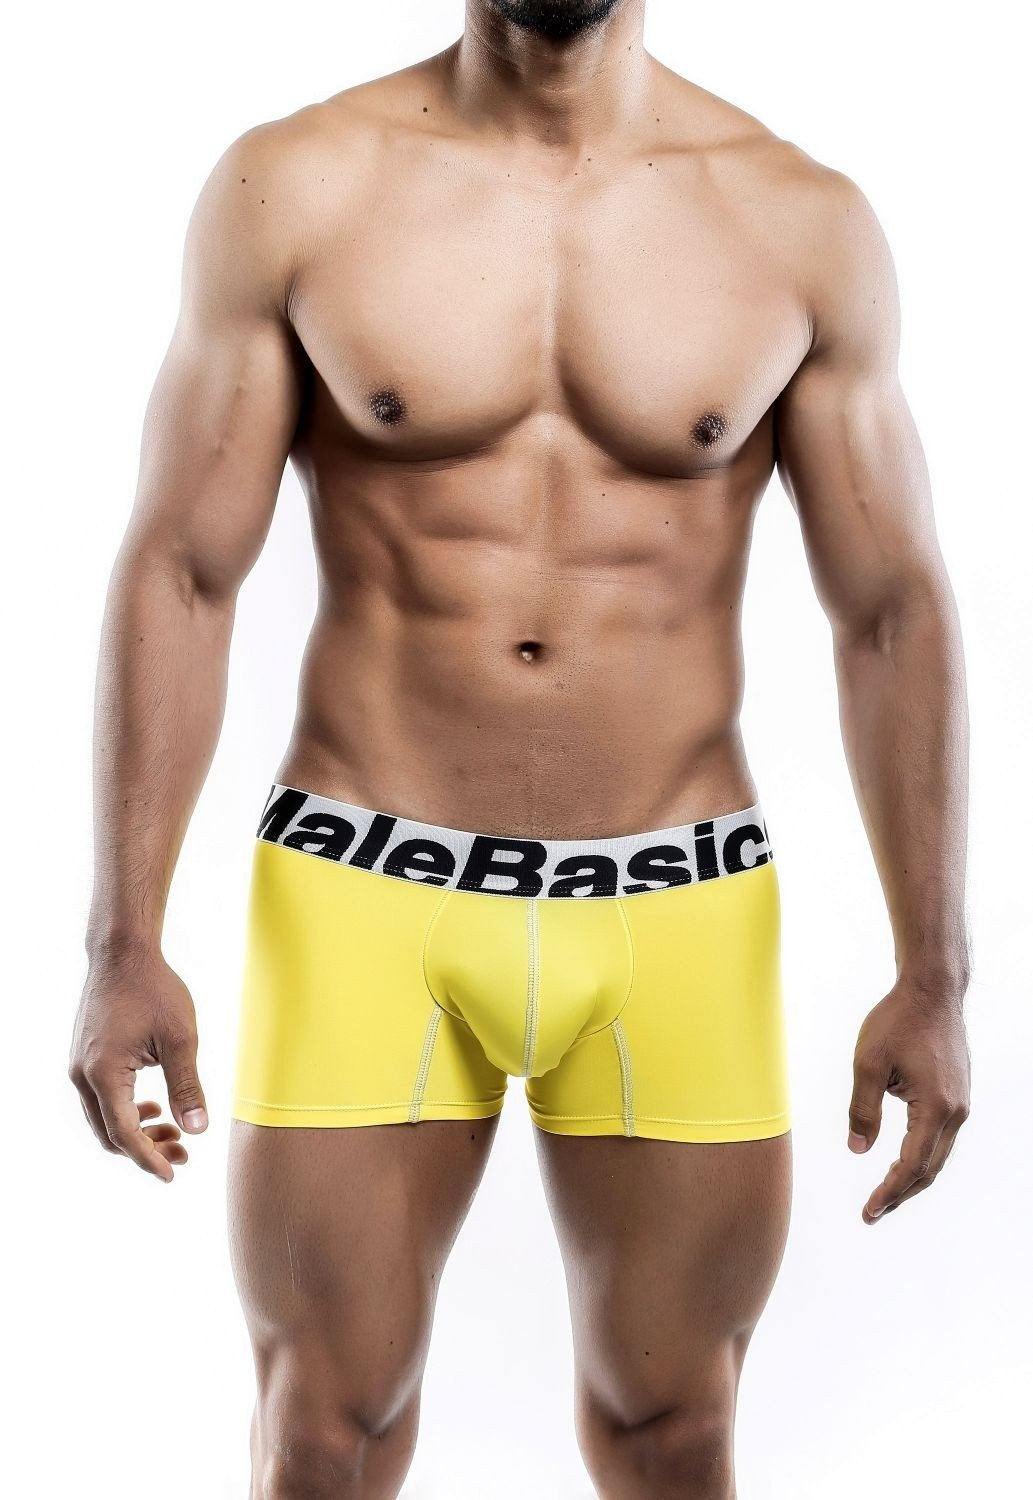 MaleBasics Sports Performance Trunk Yellow